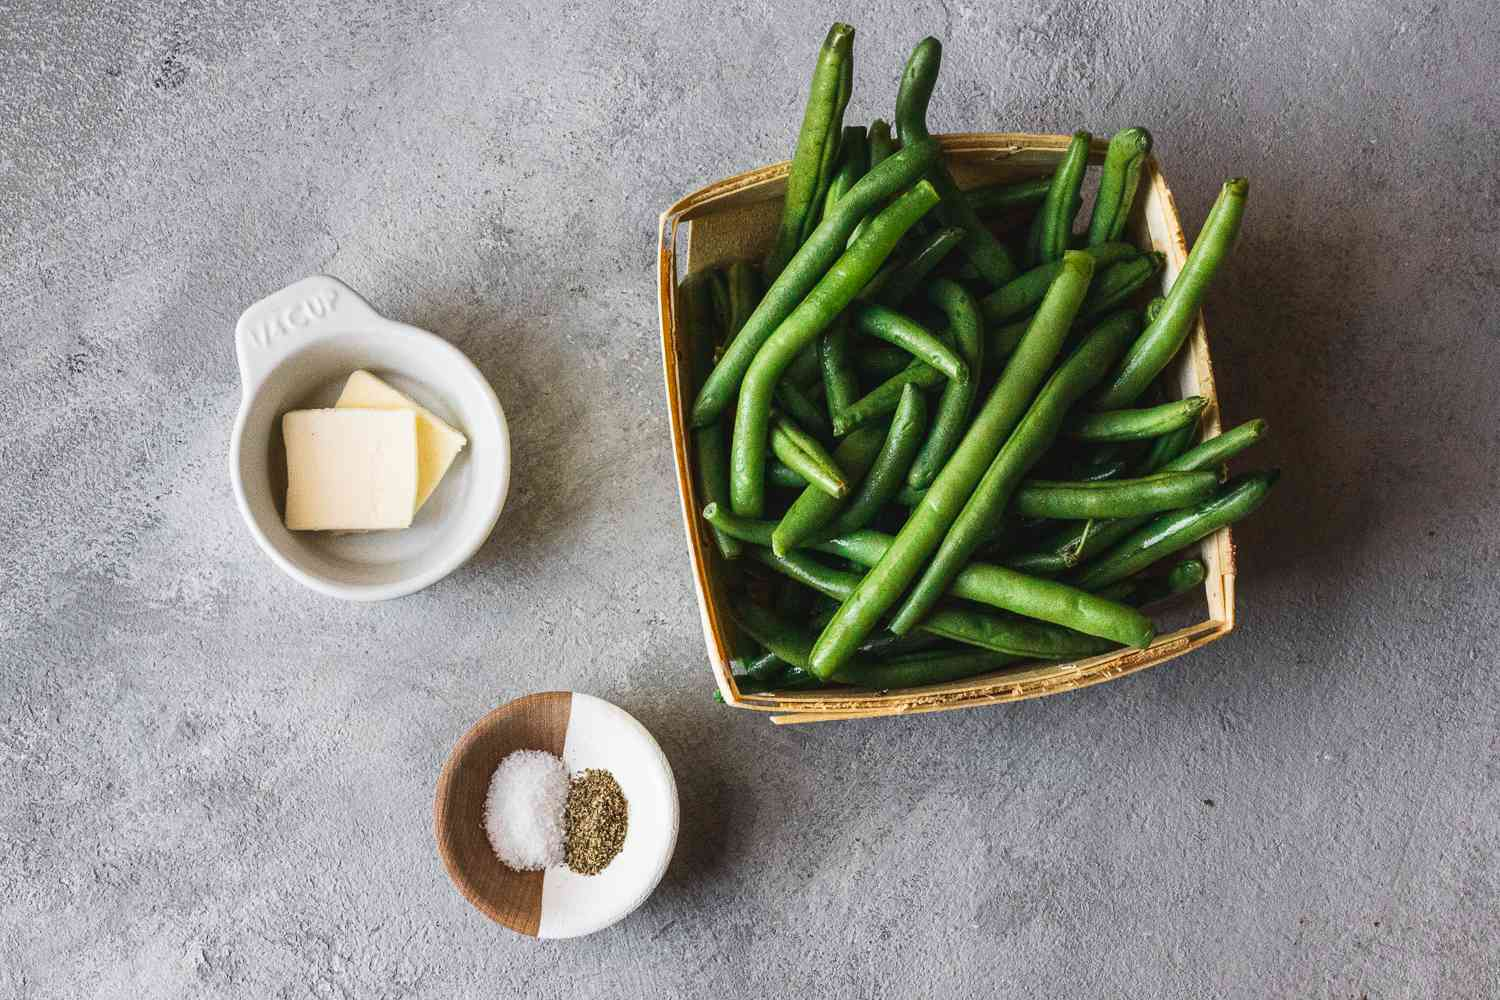 Ingredients for steamed green beans